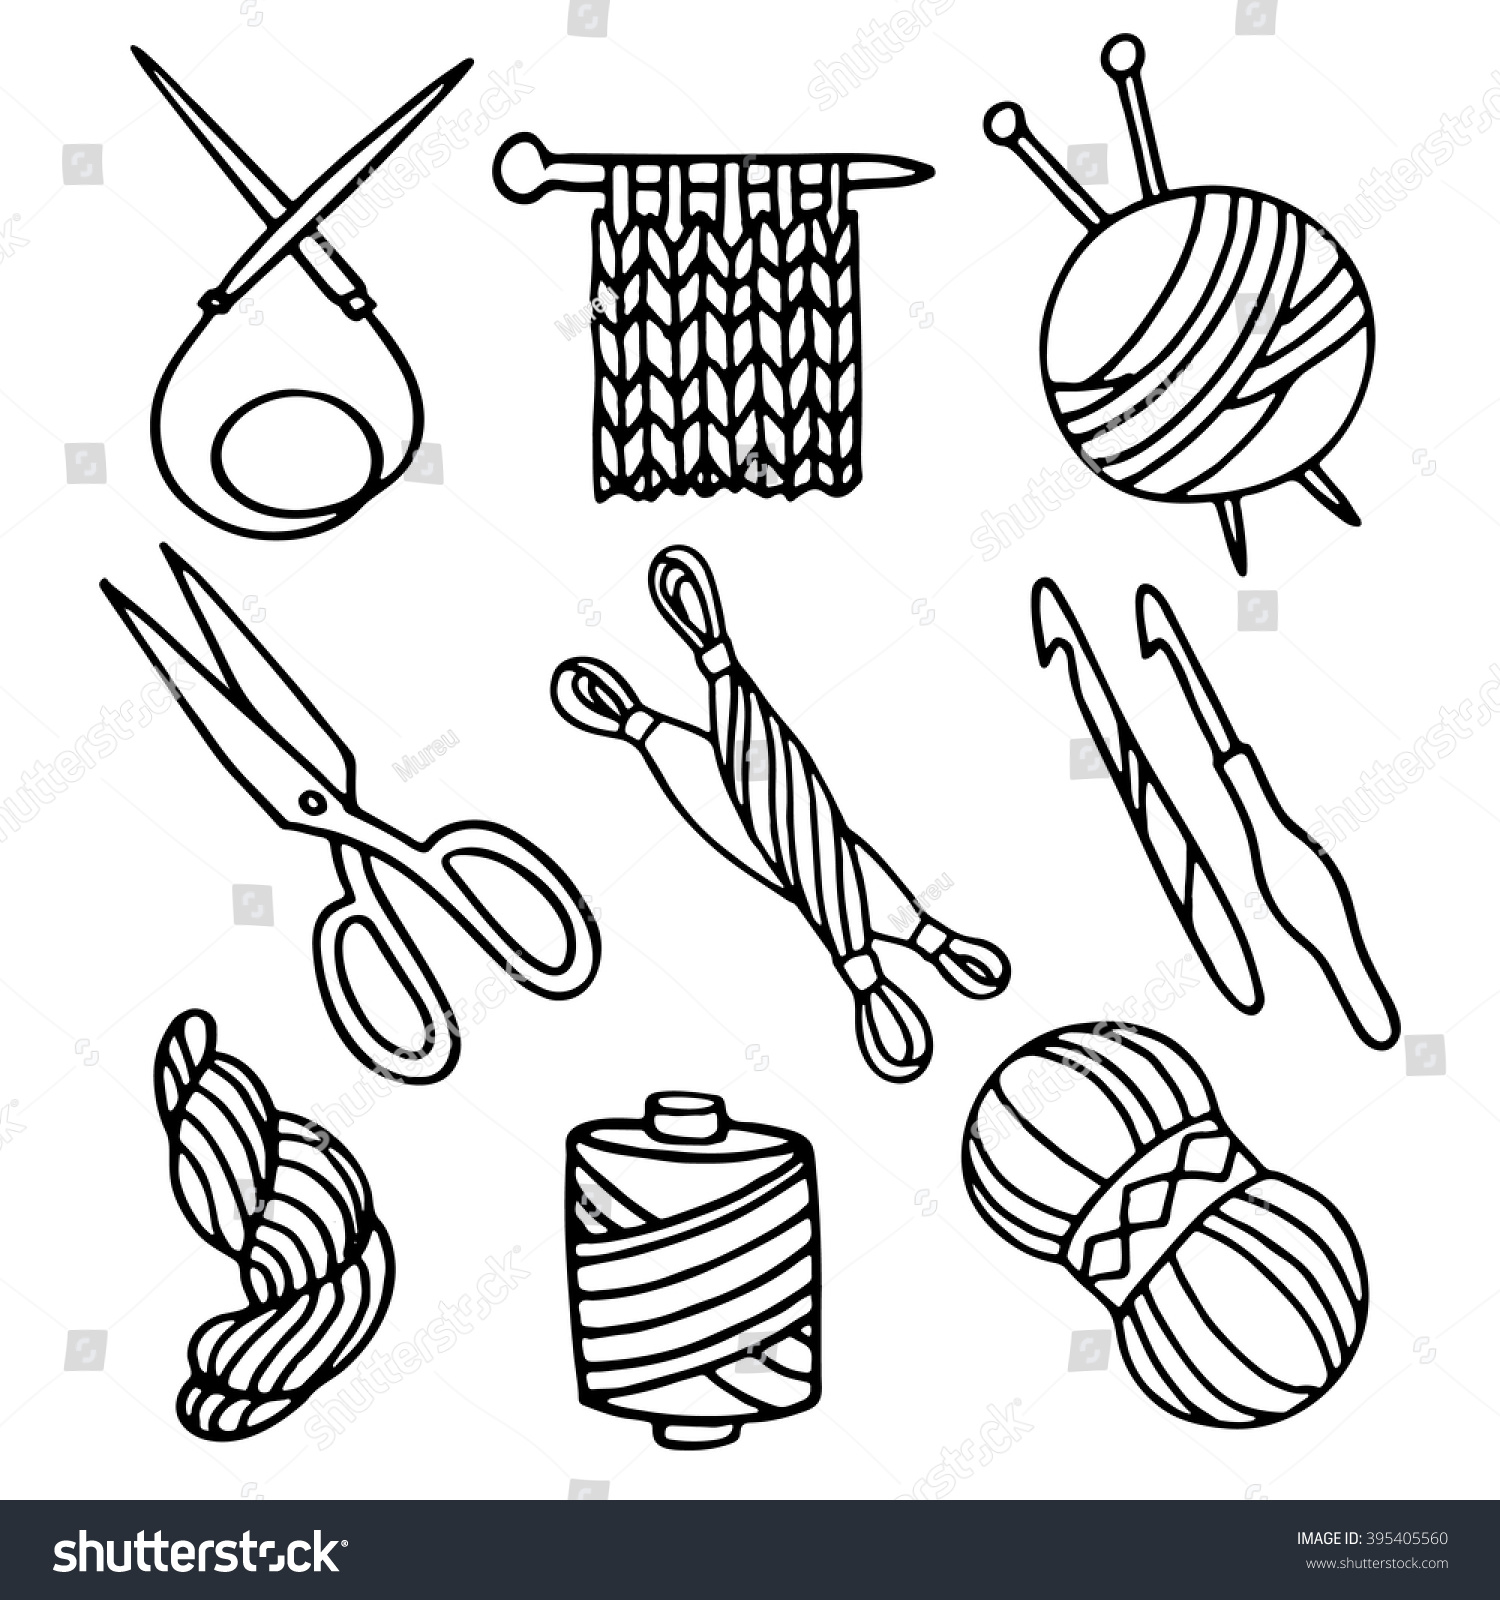 knitting crochet set simple contour drawings stock vector